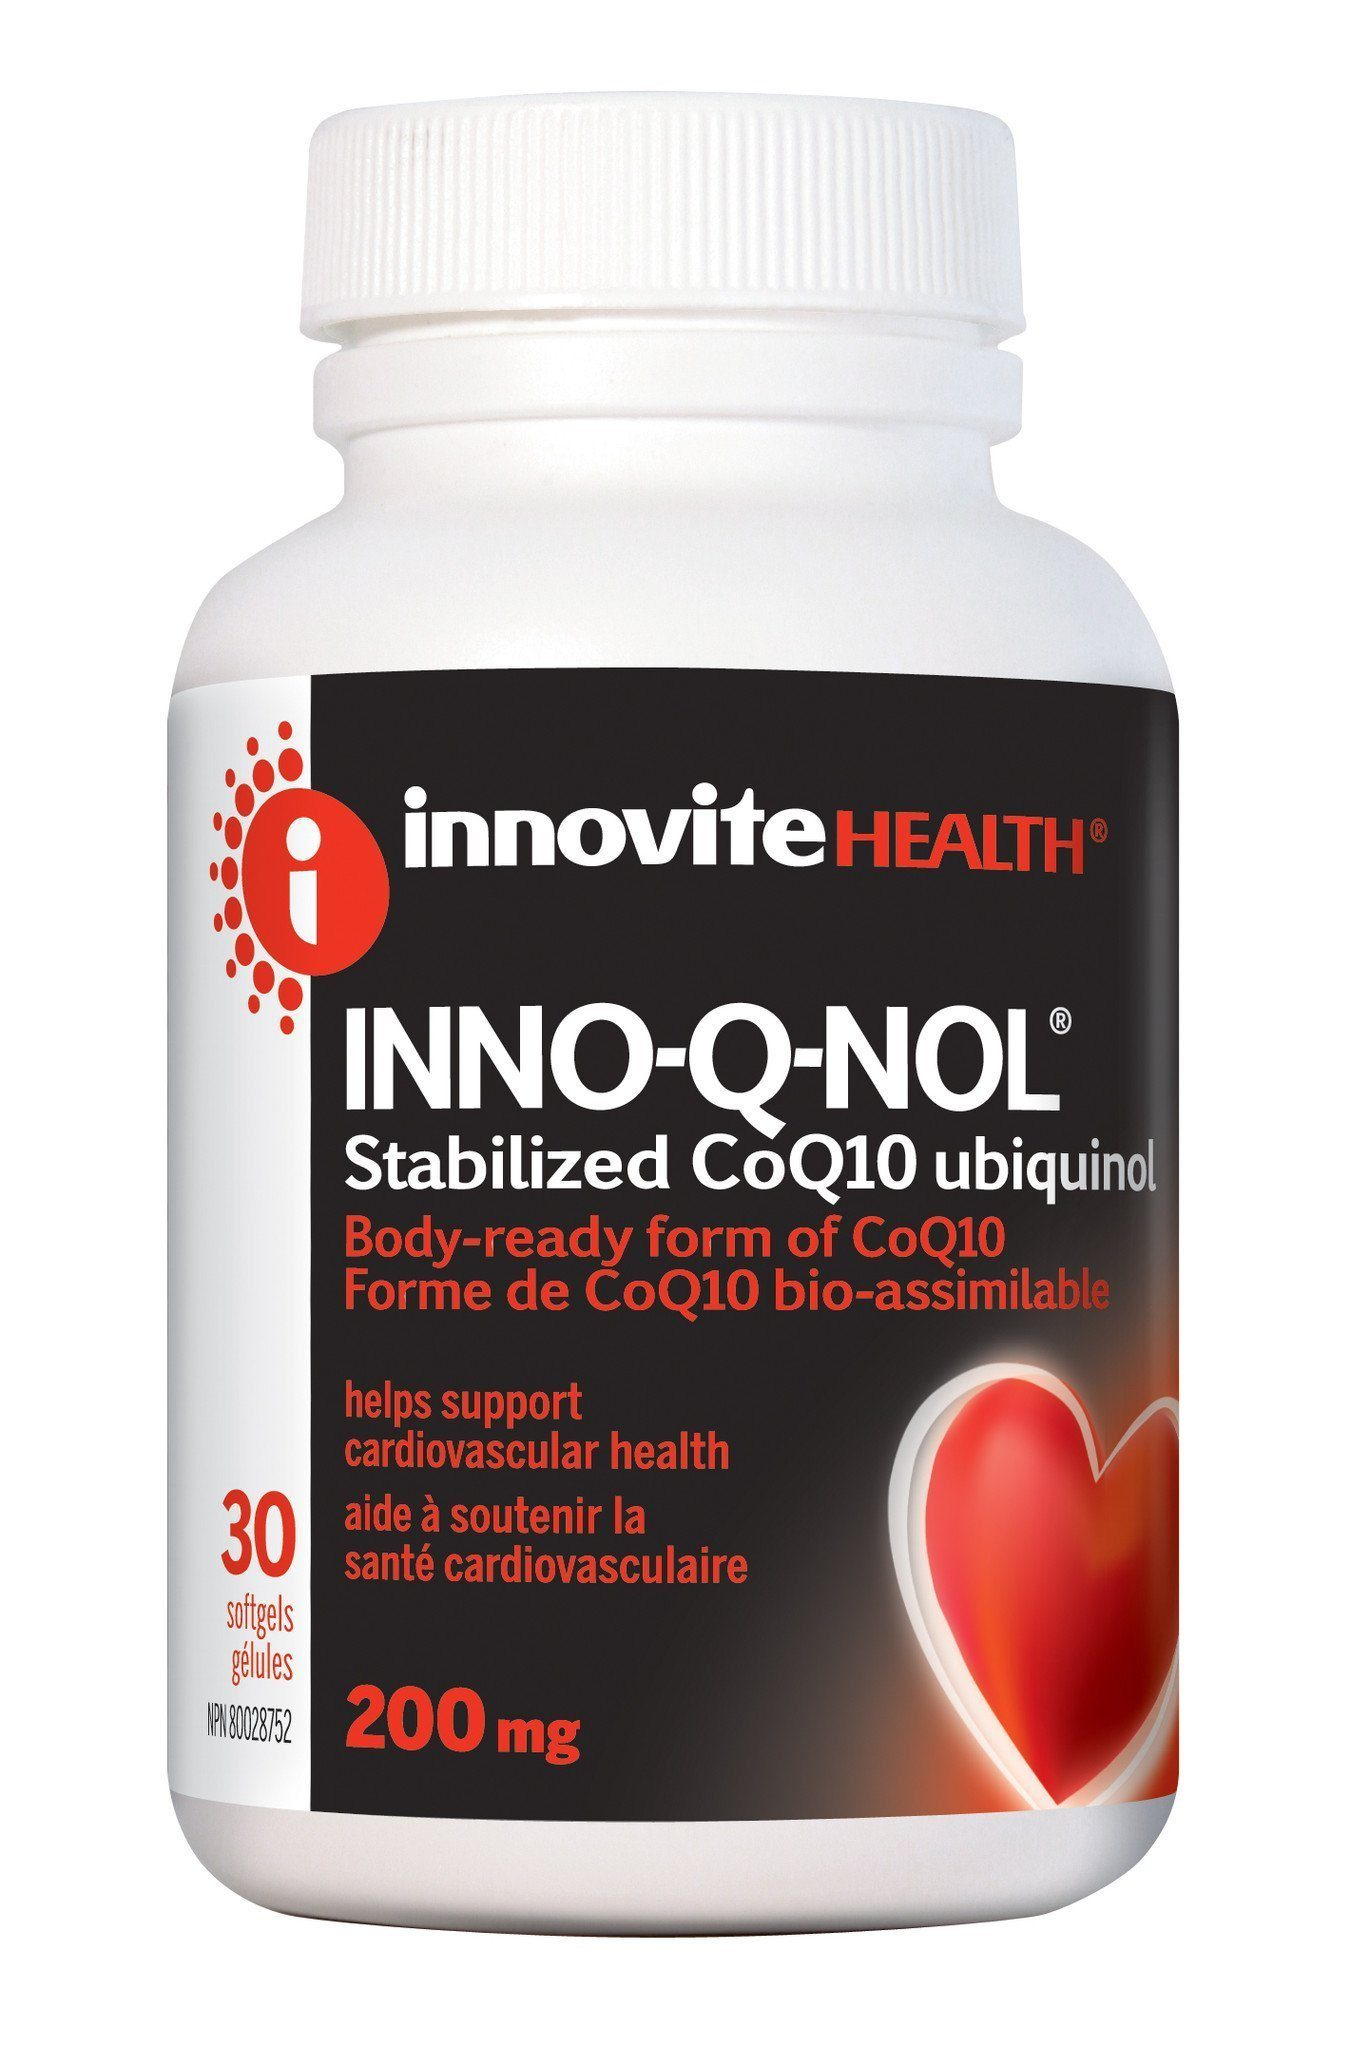 Supplements & Vitamins - Inno-Vite - Inno-Q-Nol 200mg, 30 Softgels